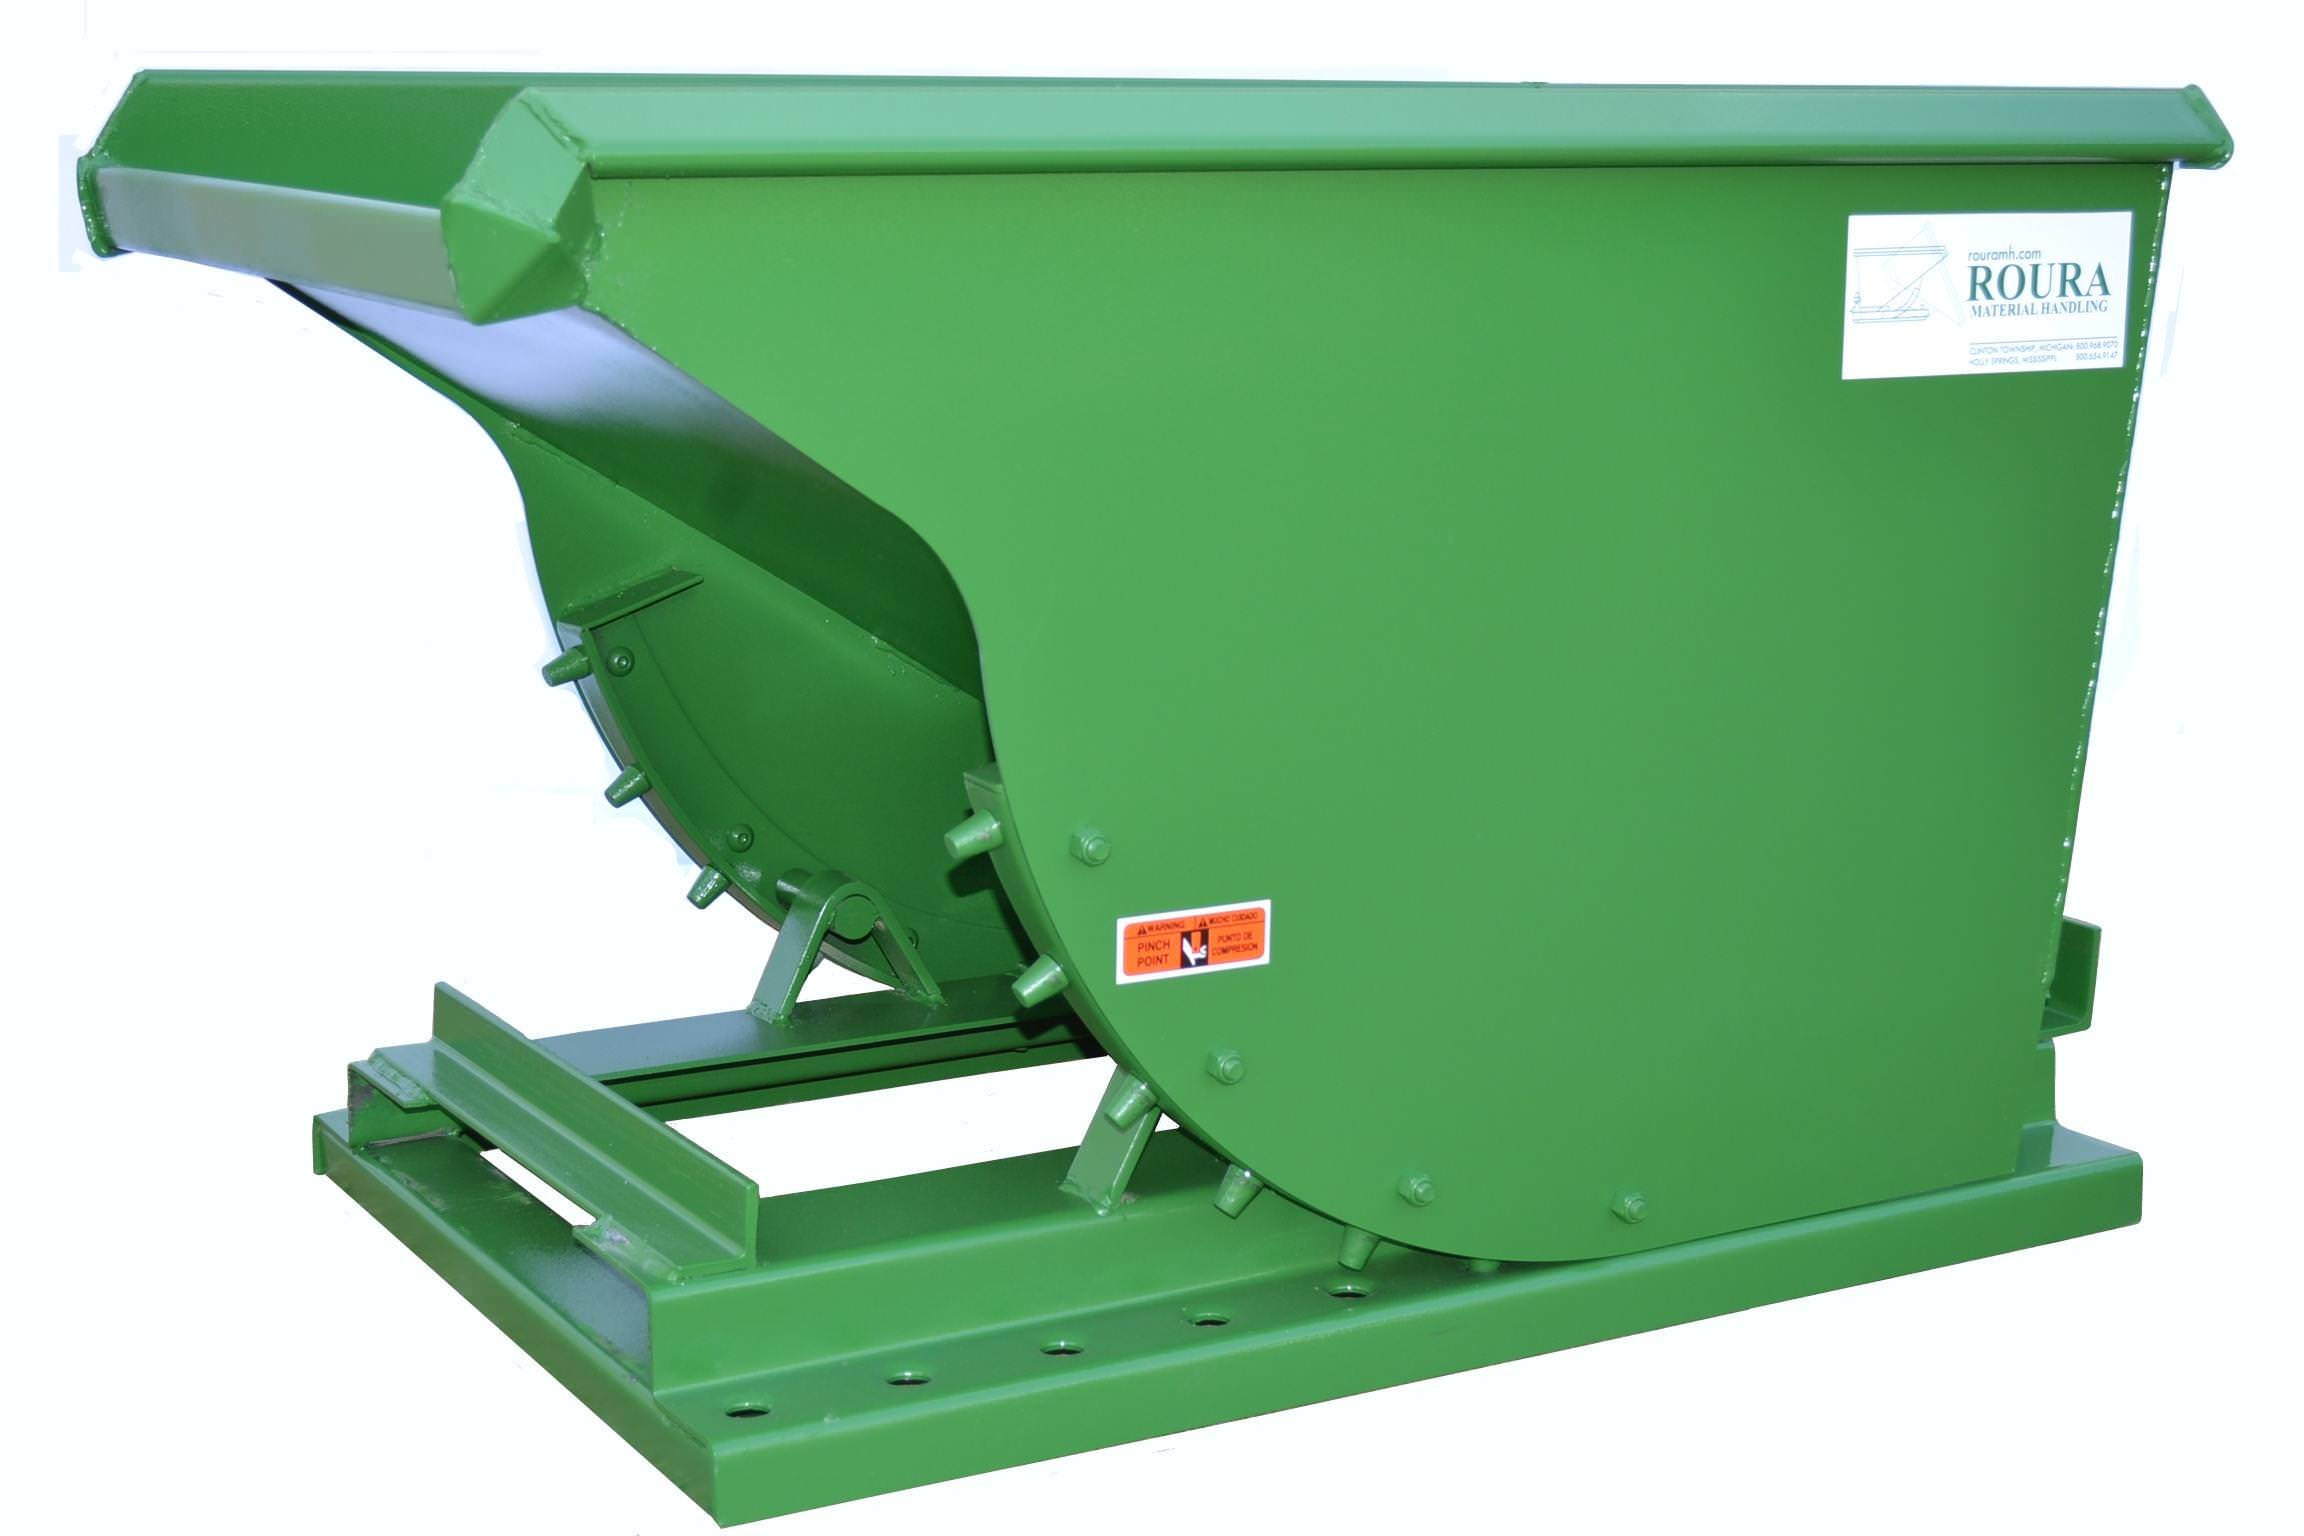 DURABLE 1/2 YD ROURA SELF-DUMPING HOPPER